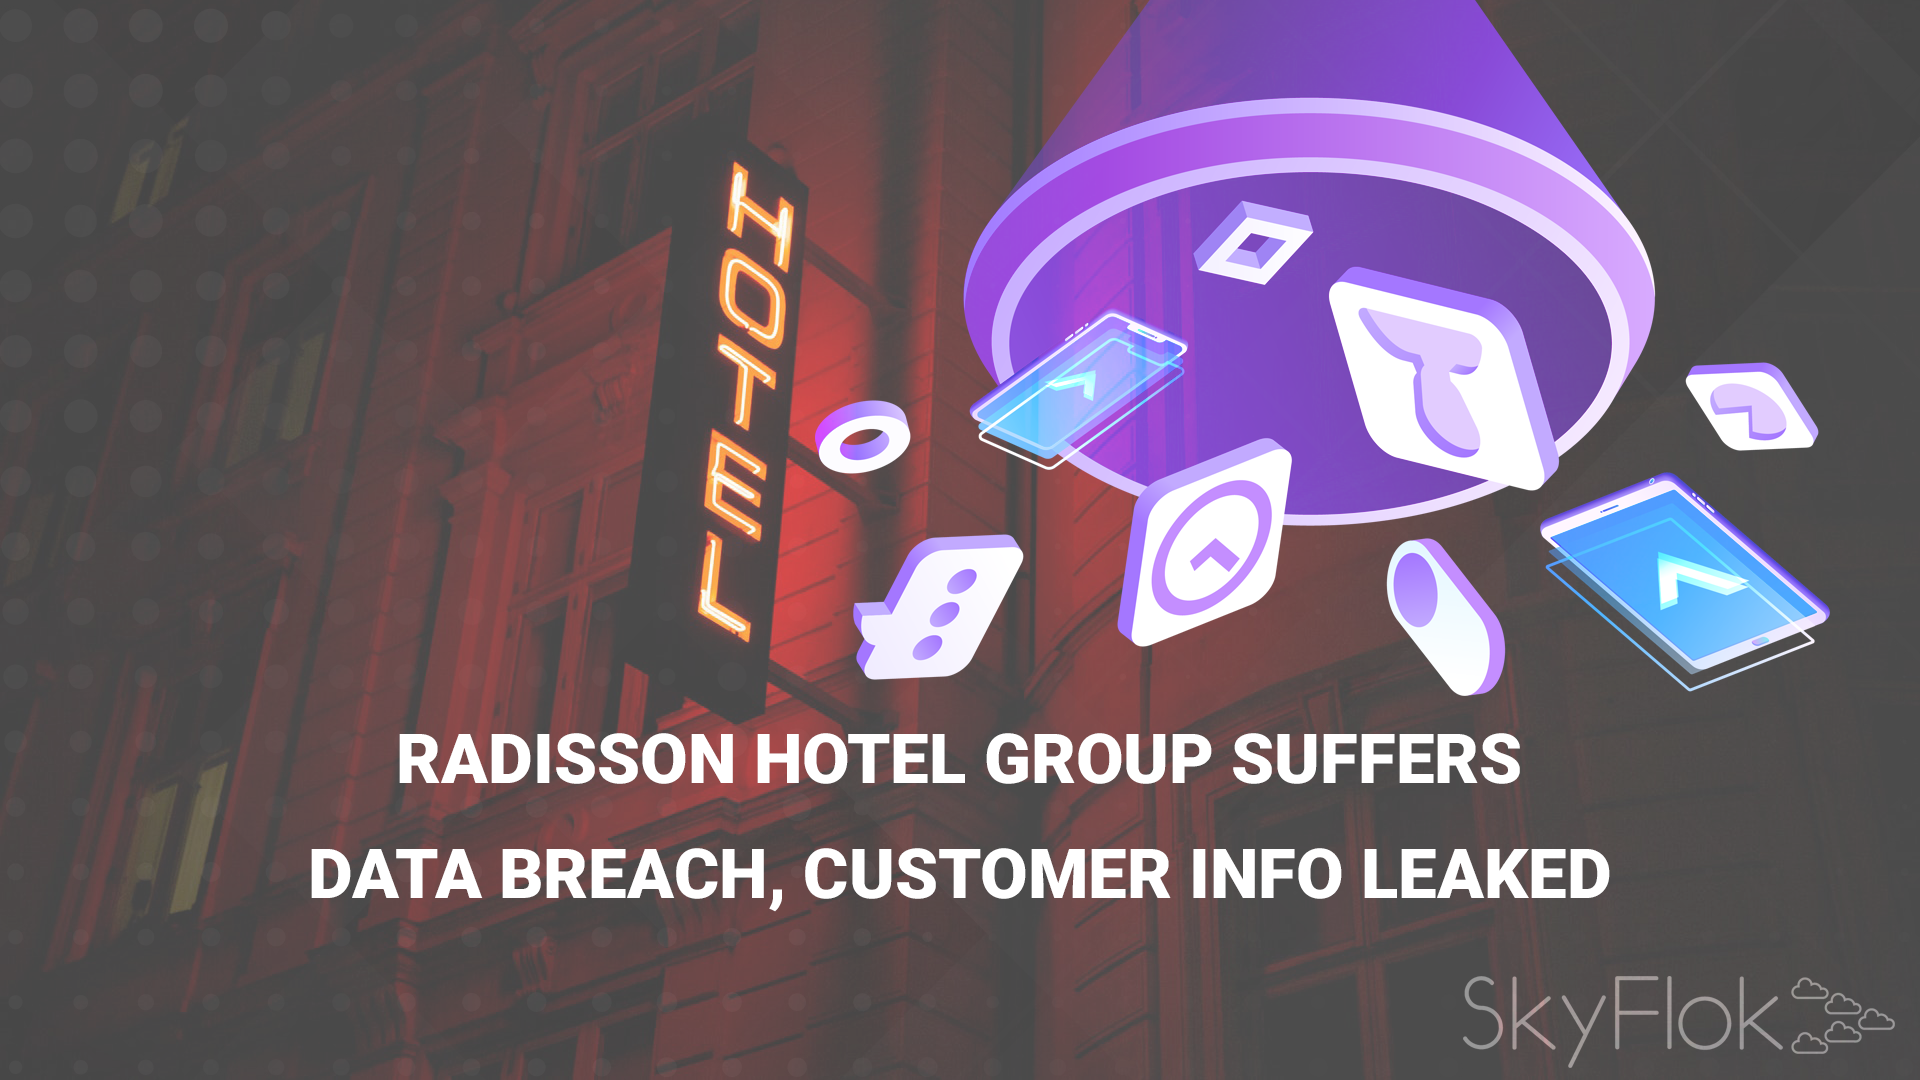 Radisson Hotel Group suffers data breach, customer info leaked